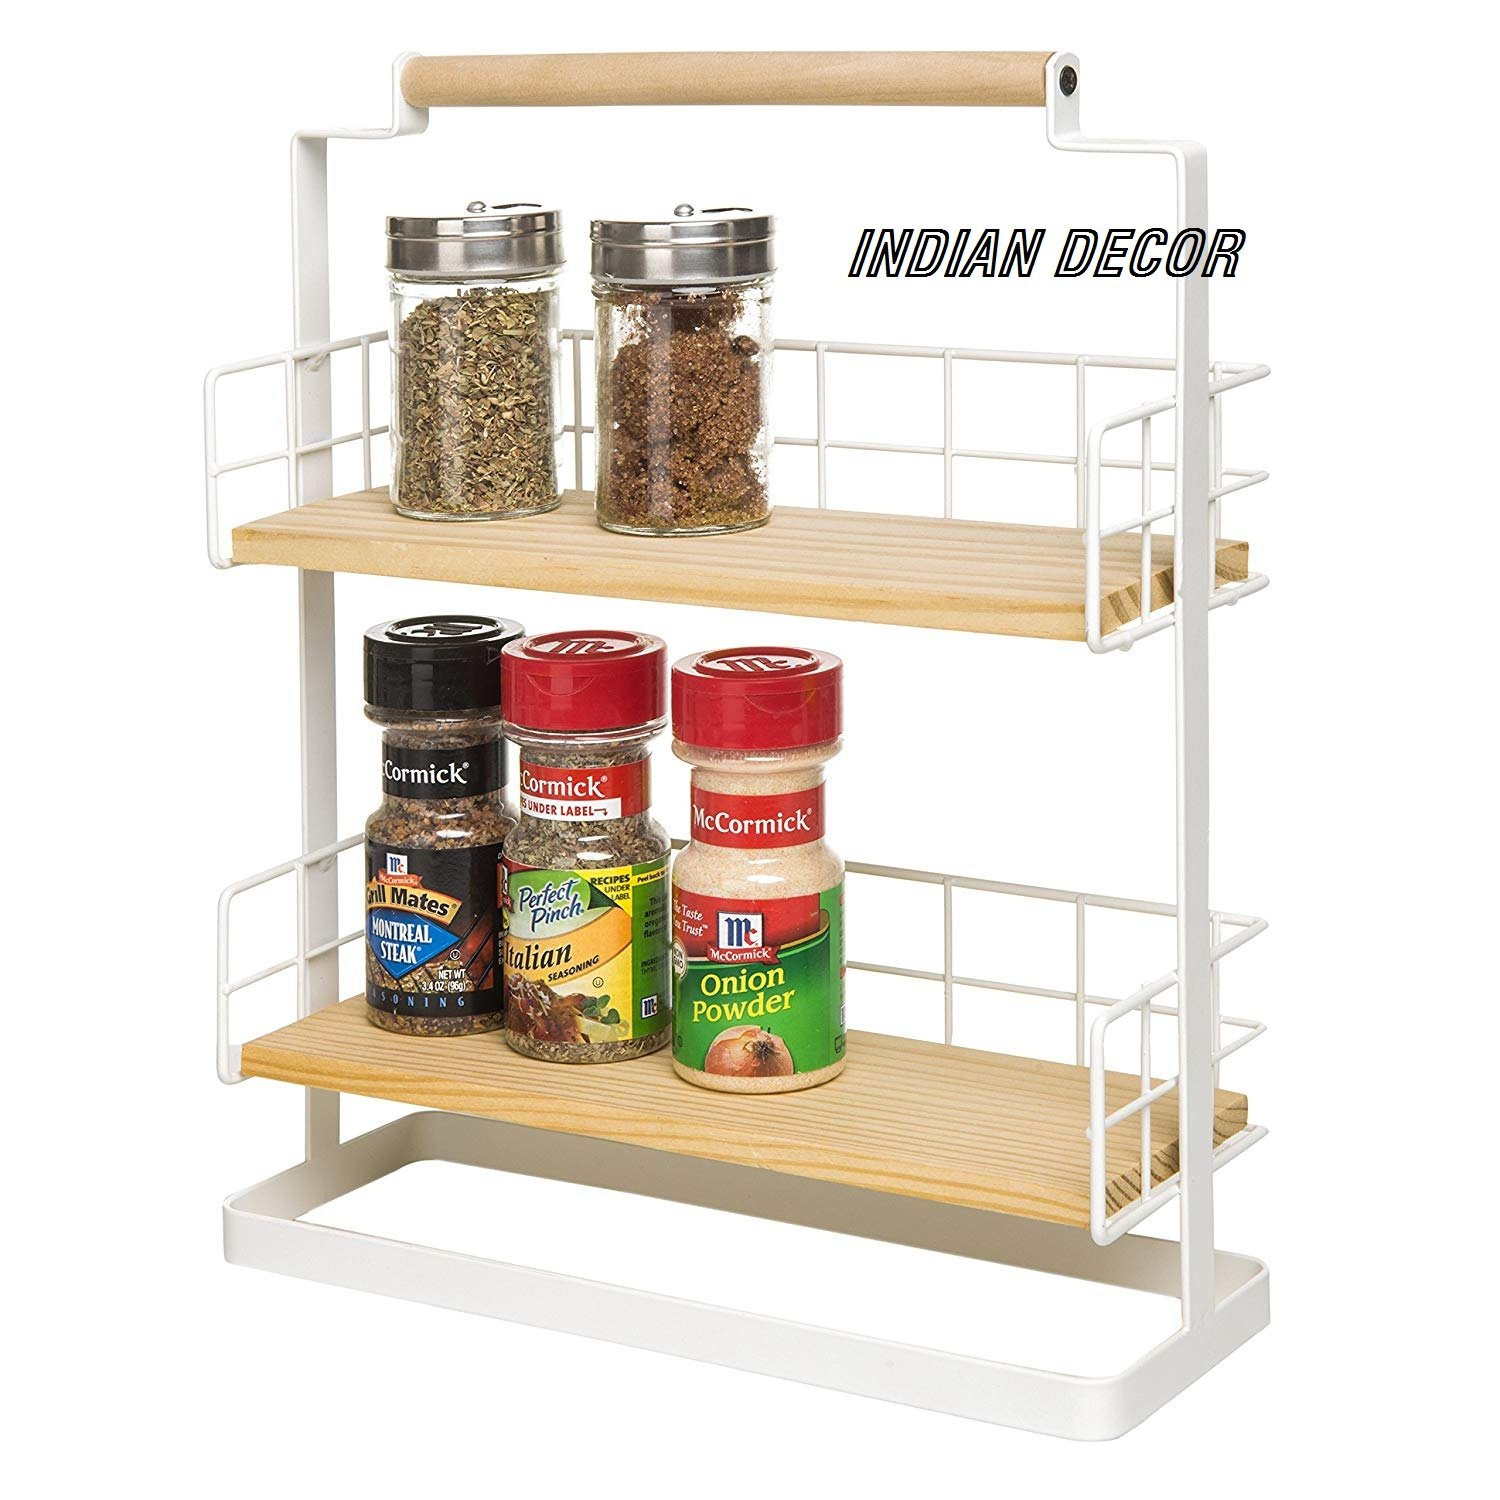 Buy indian decor 1310 two tier countertop spice rack condiment shelf kitchen display rack kitchen storage ideas white online at low prices in india